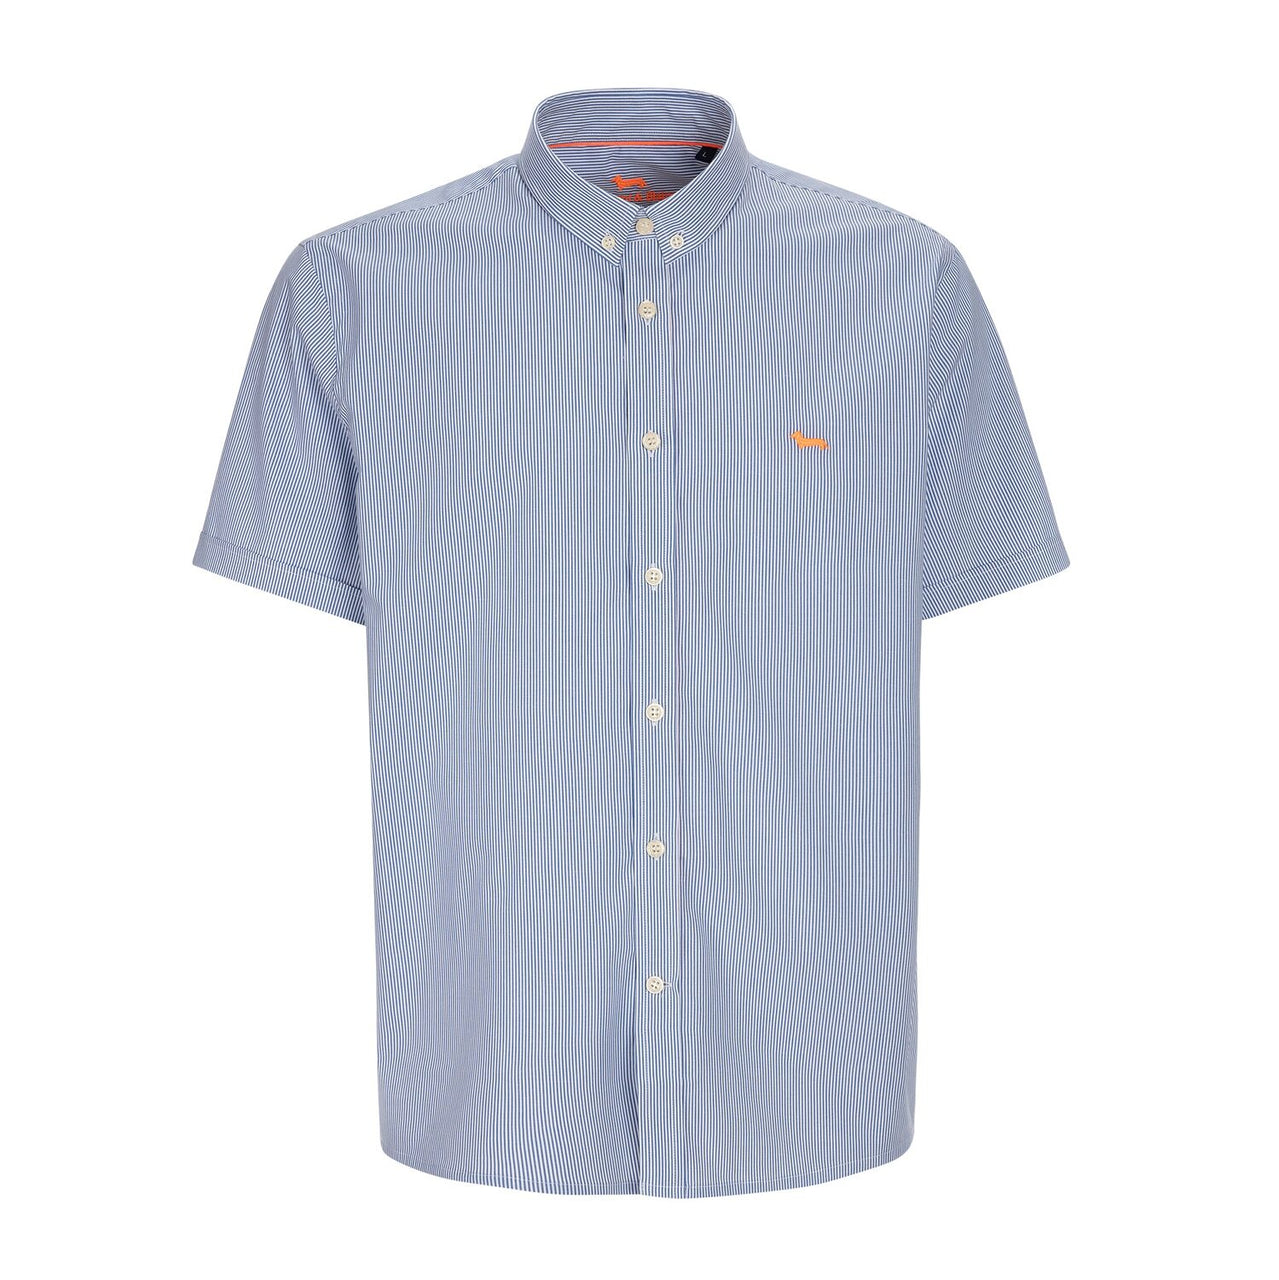 Harmont & Blaine Striped Short Sleeve Shirt - Blue